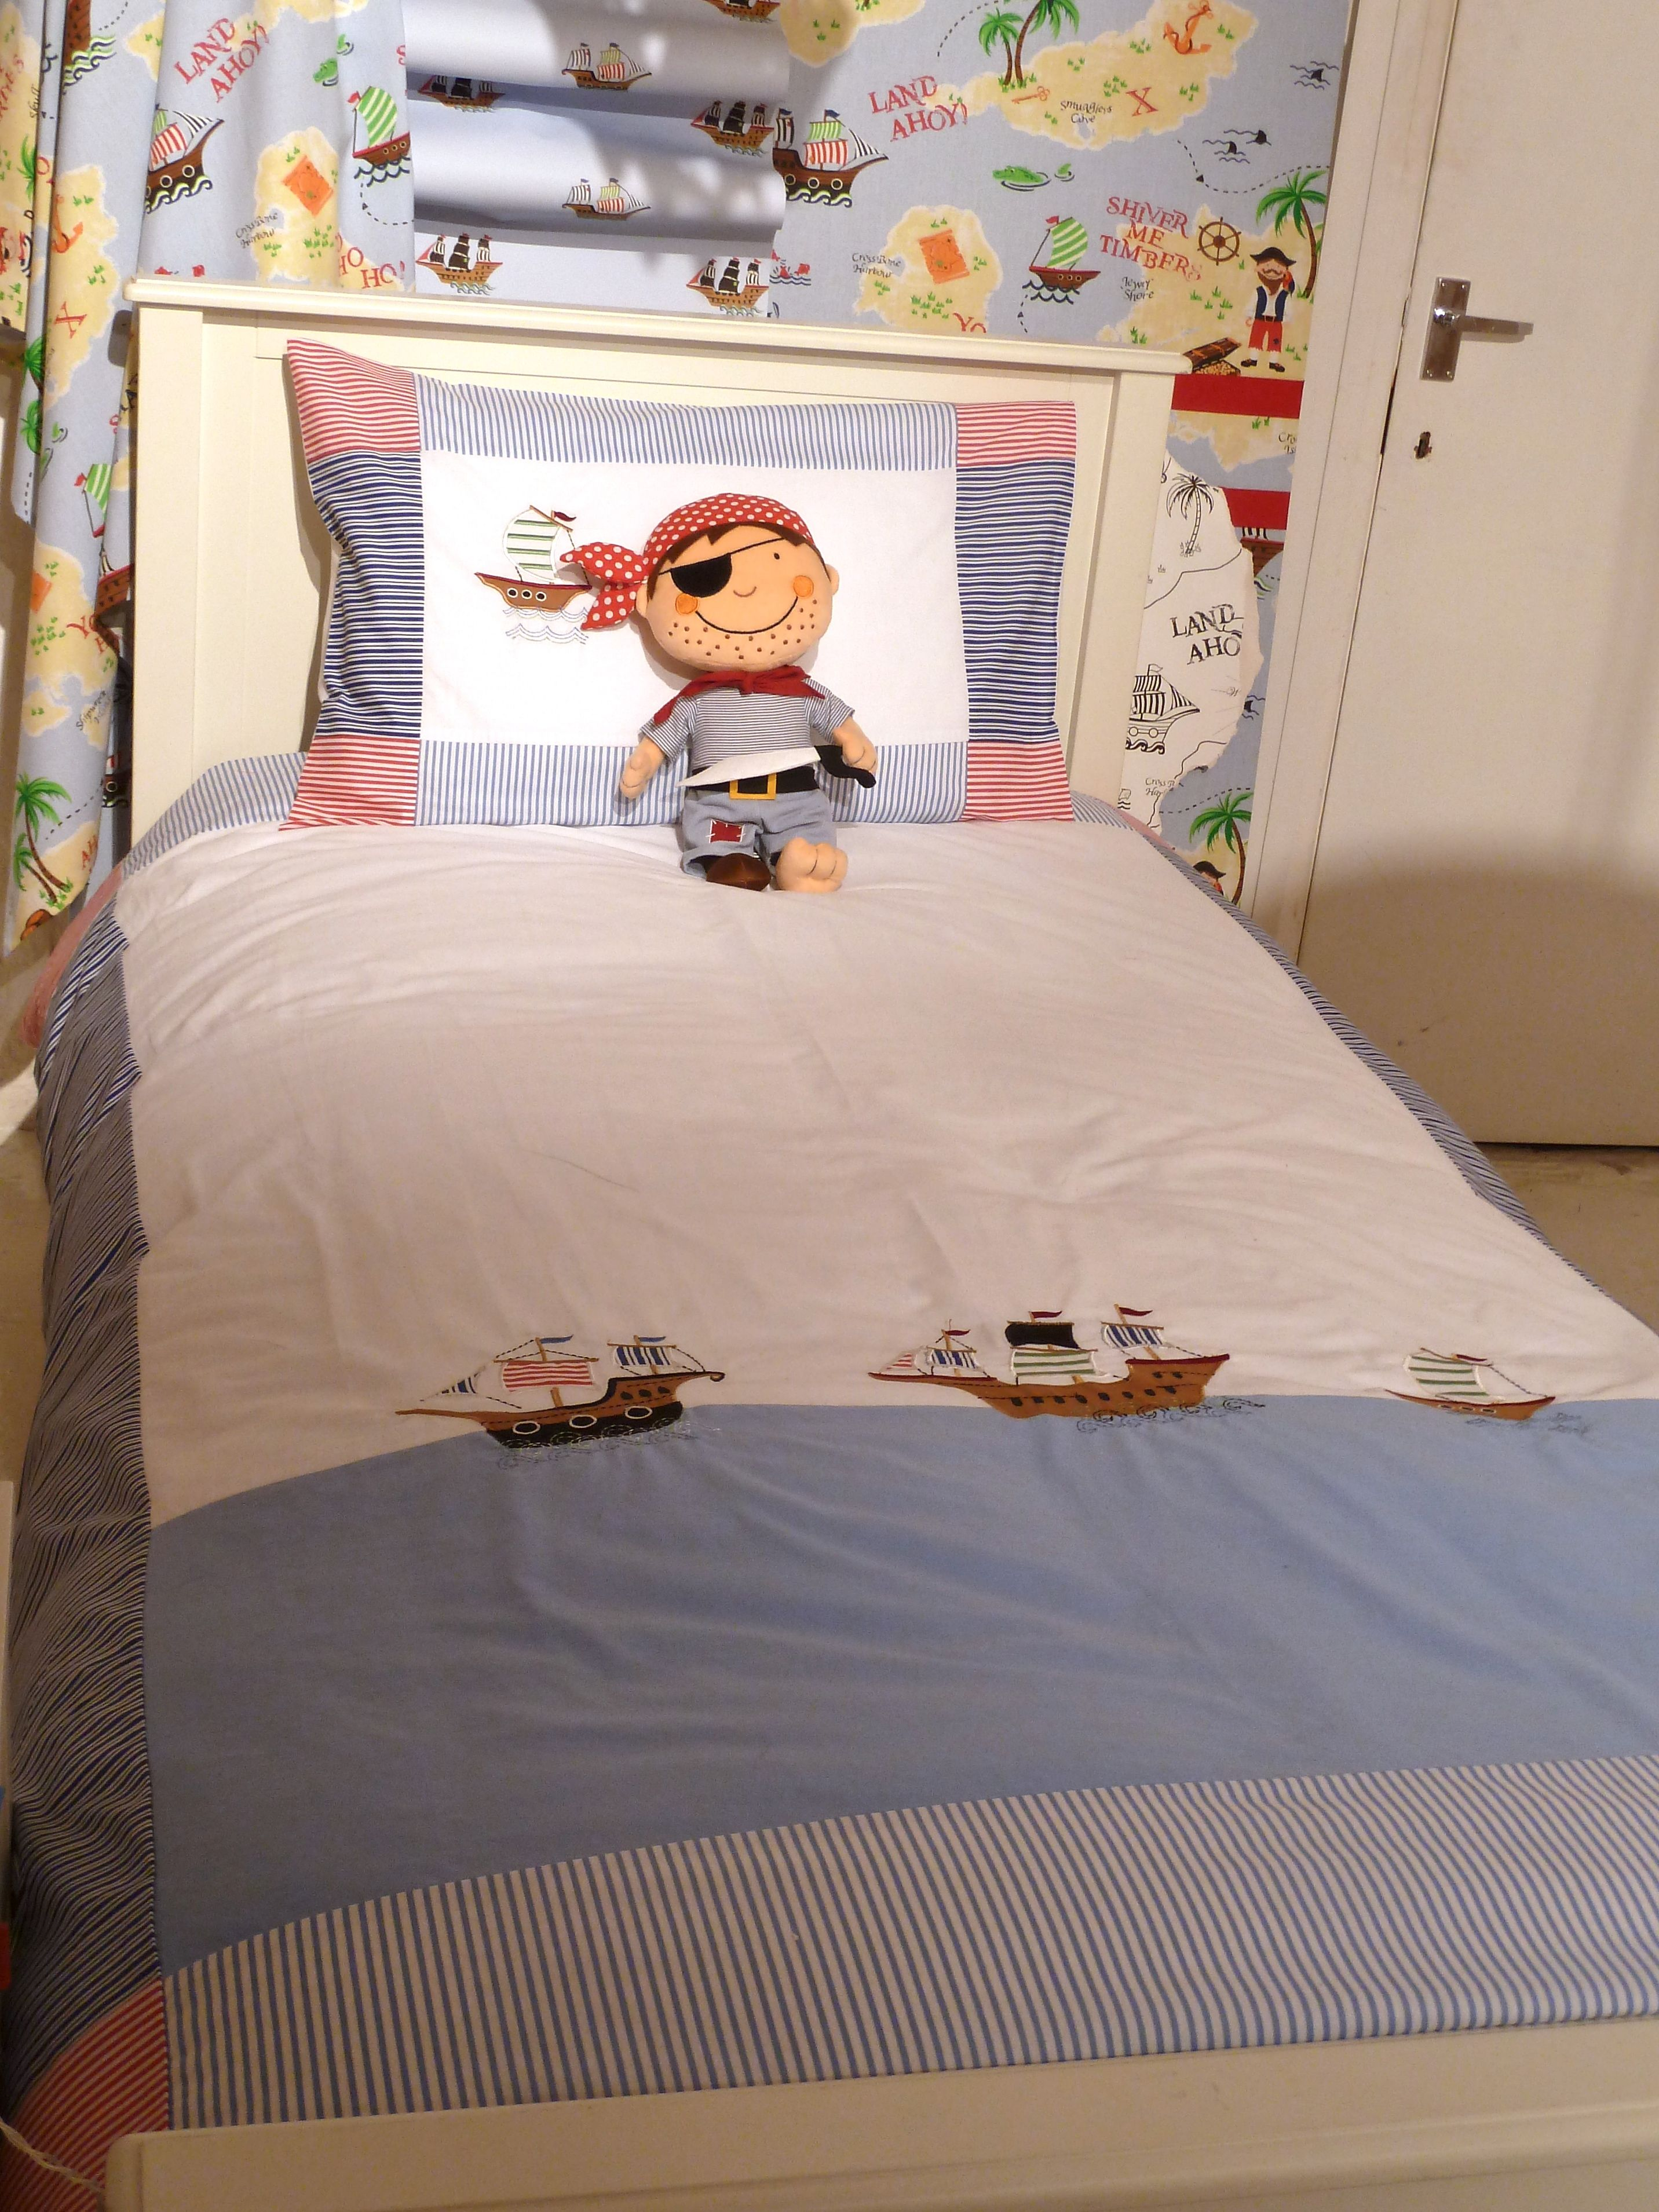 Pirate Theme Bedding For Boys At Laura Ashley Summer 2012